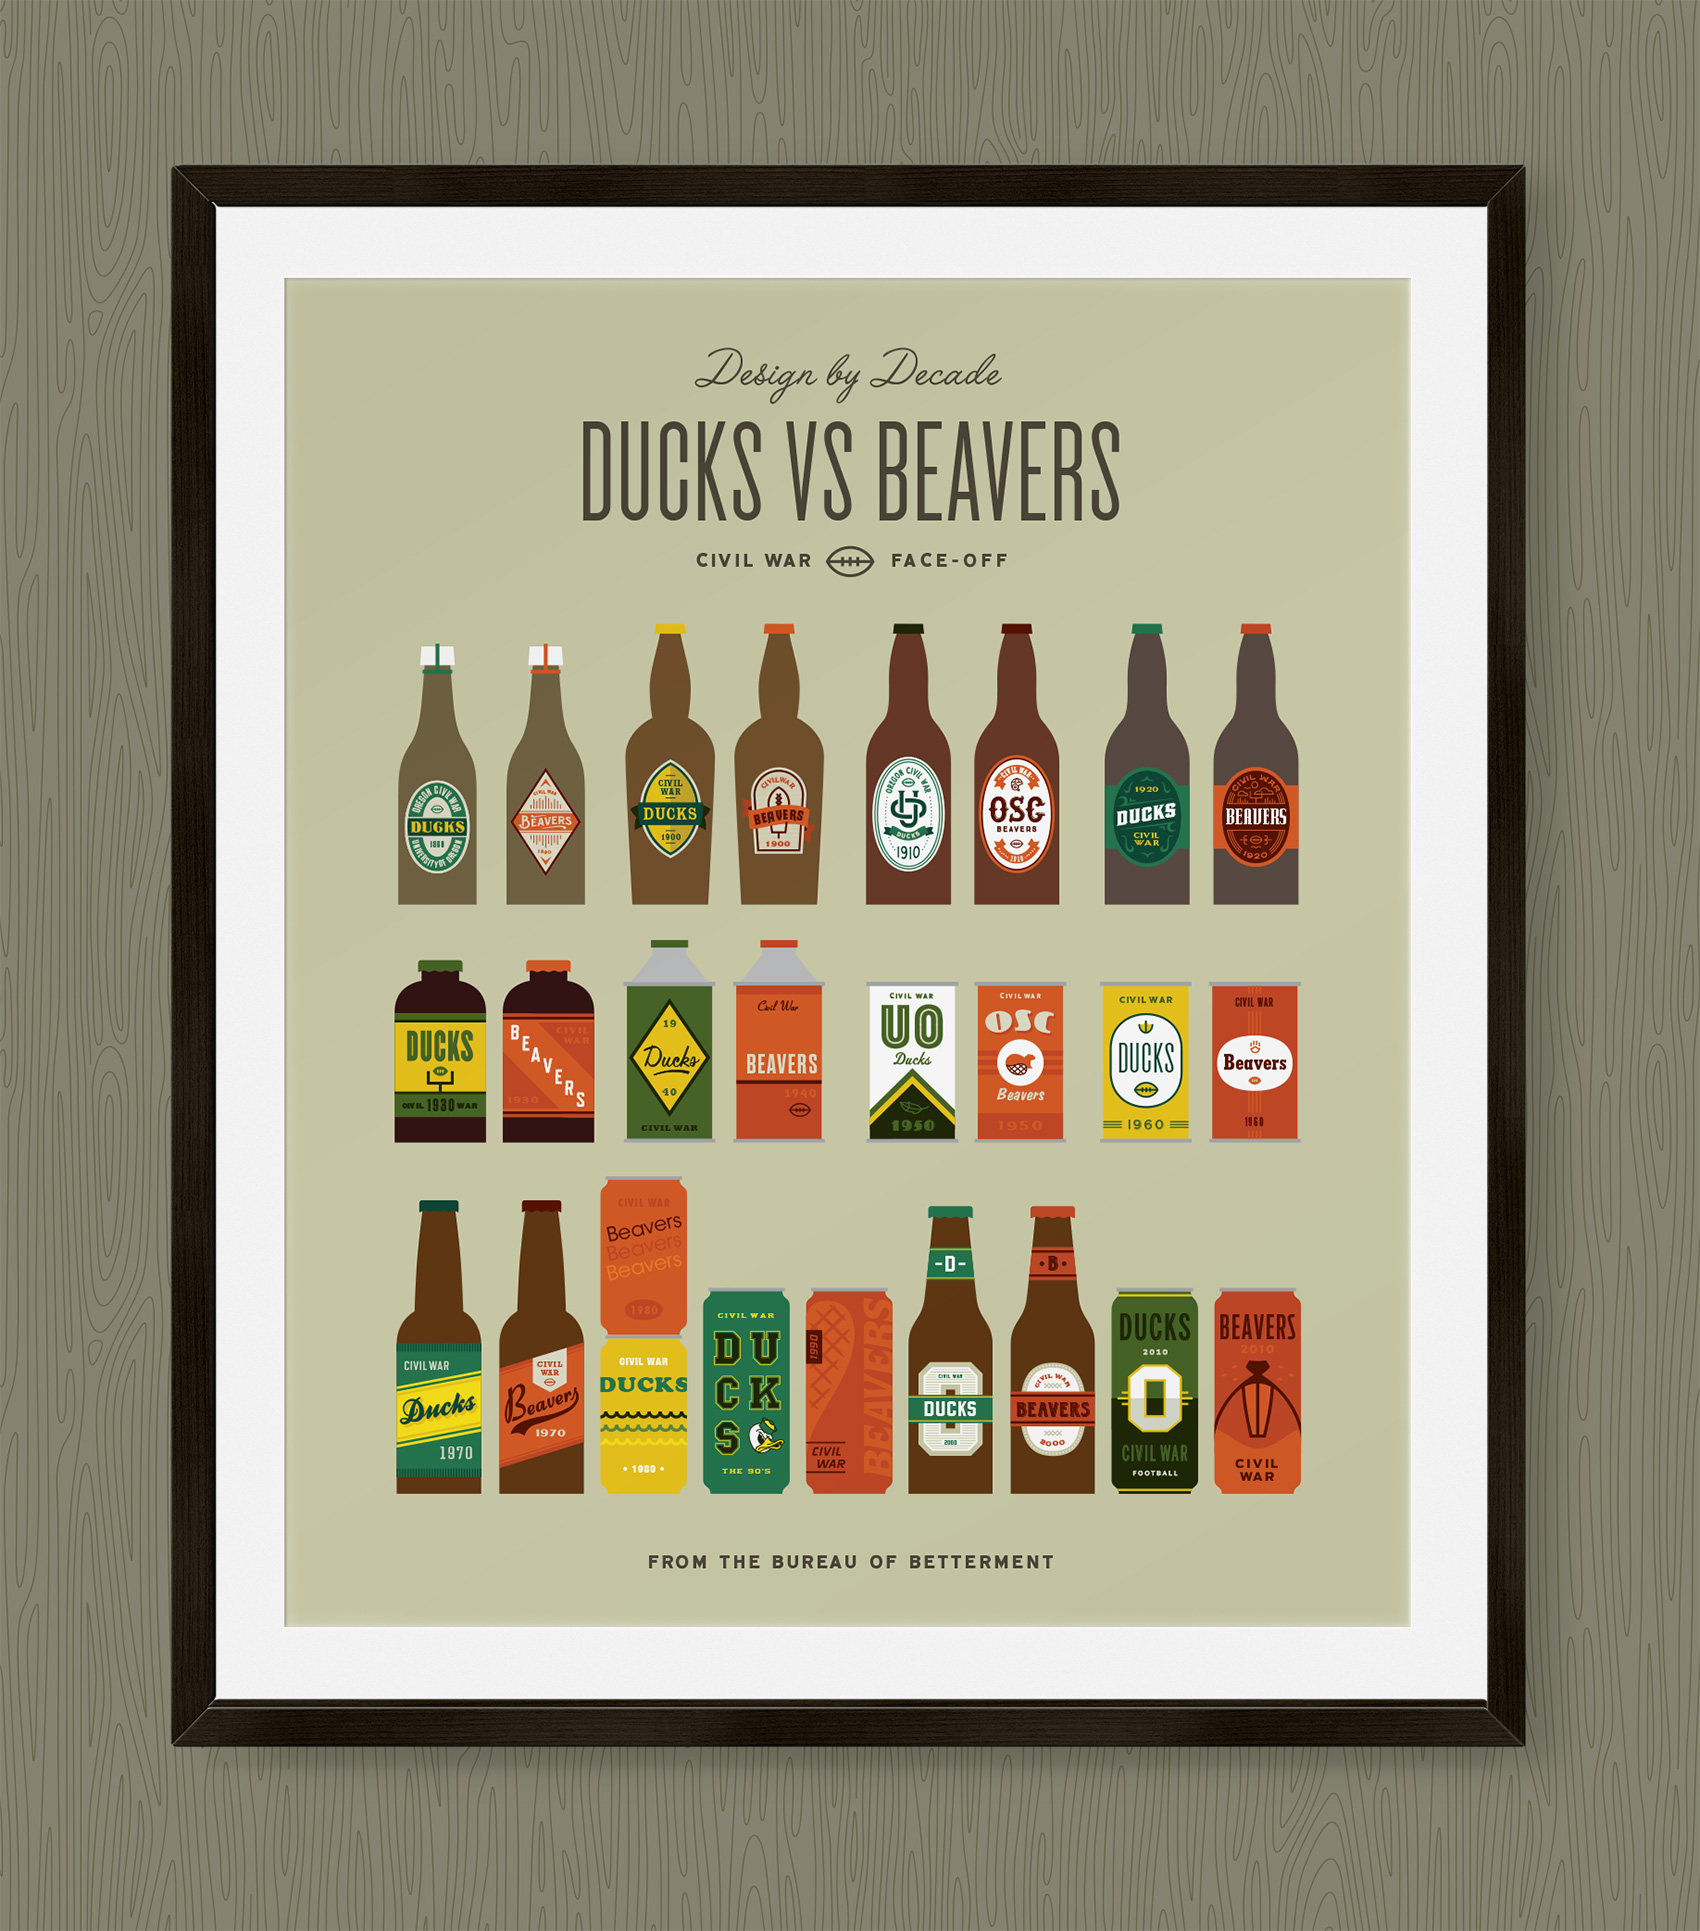 13 decades of beer designs for the Oregon State Beavers and University of Oregon Ducks.